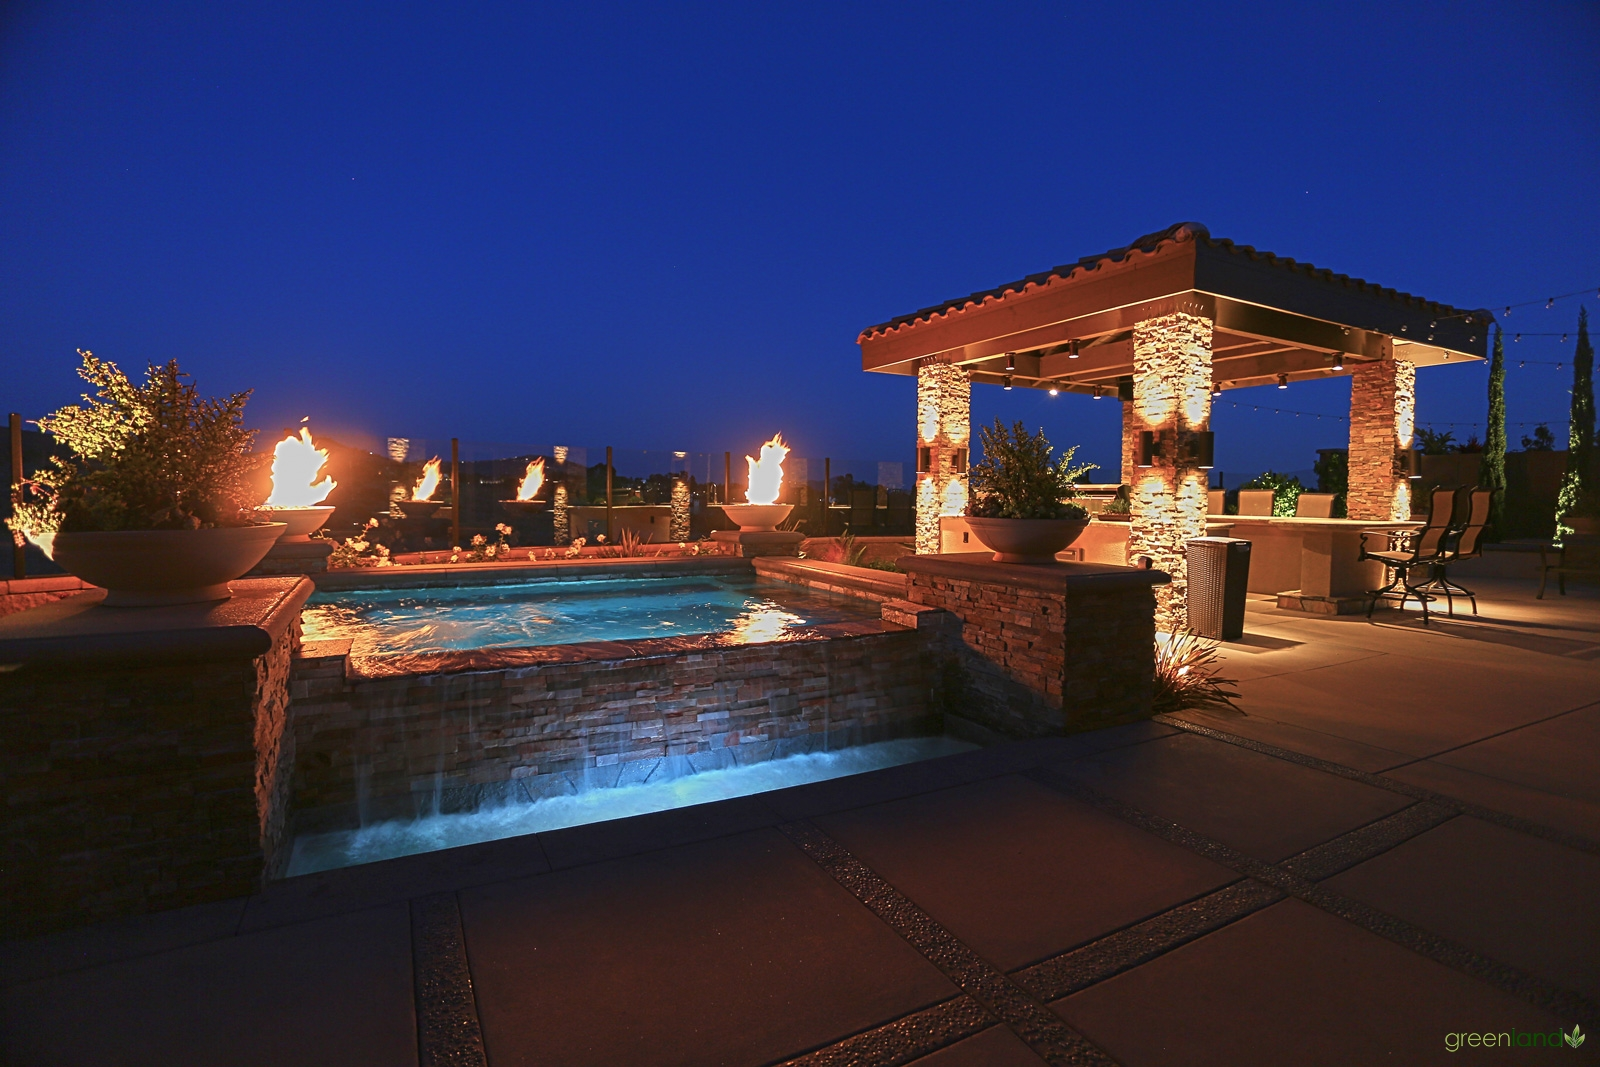 Outside Kitchen and Spa - Night